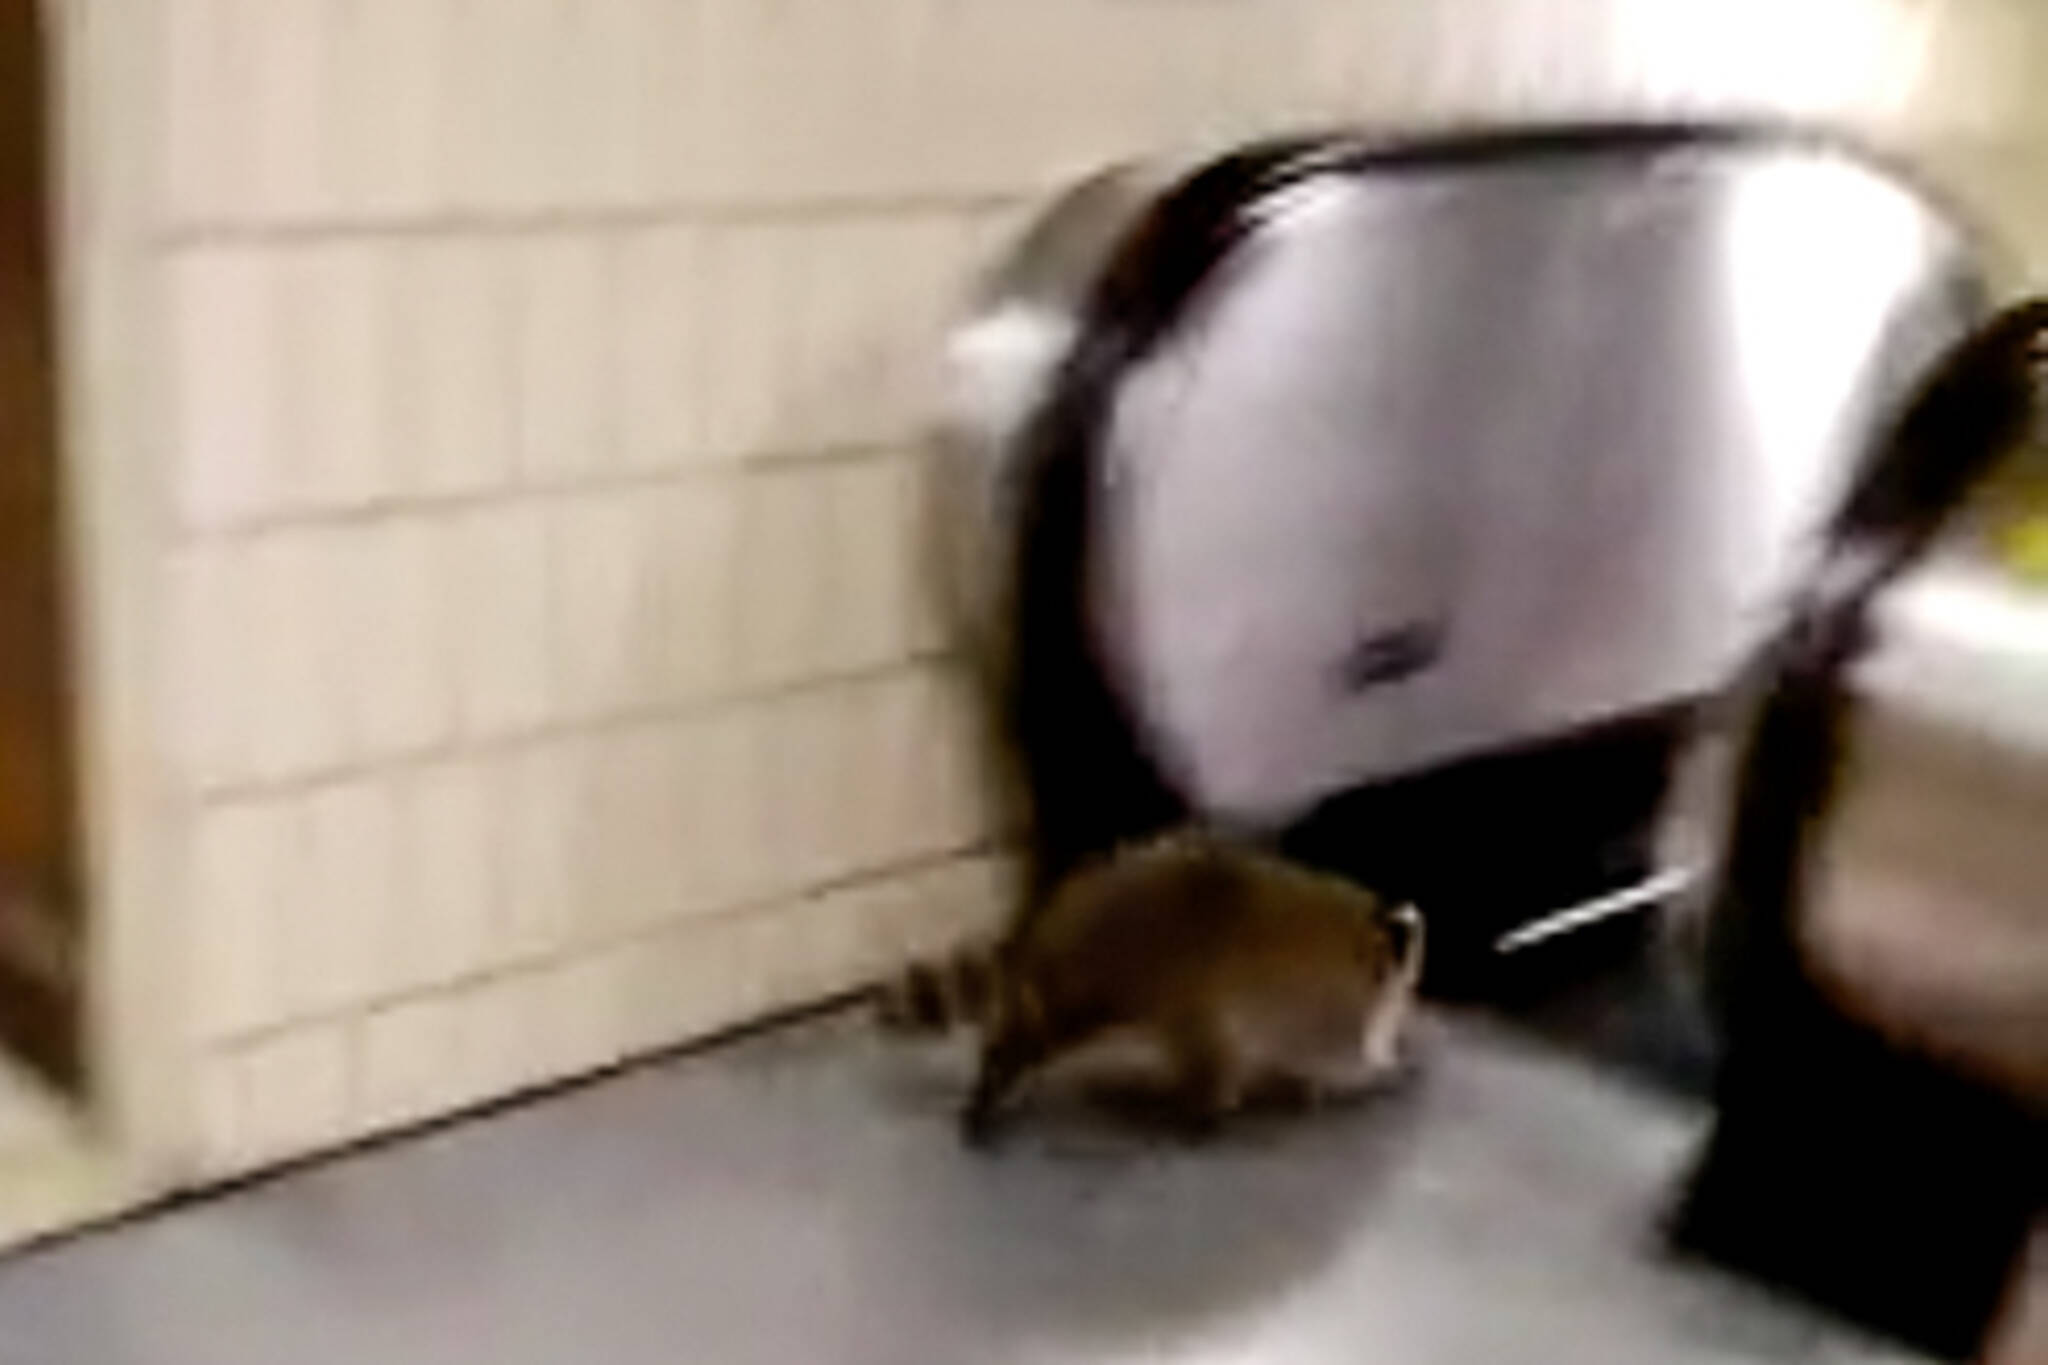 toronto raccoon escalator